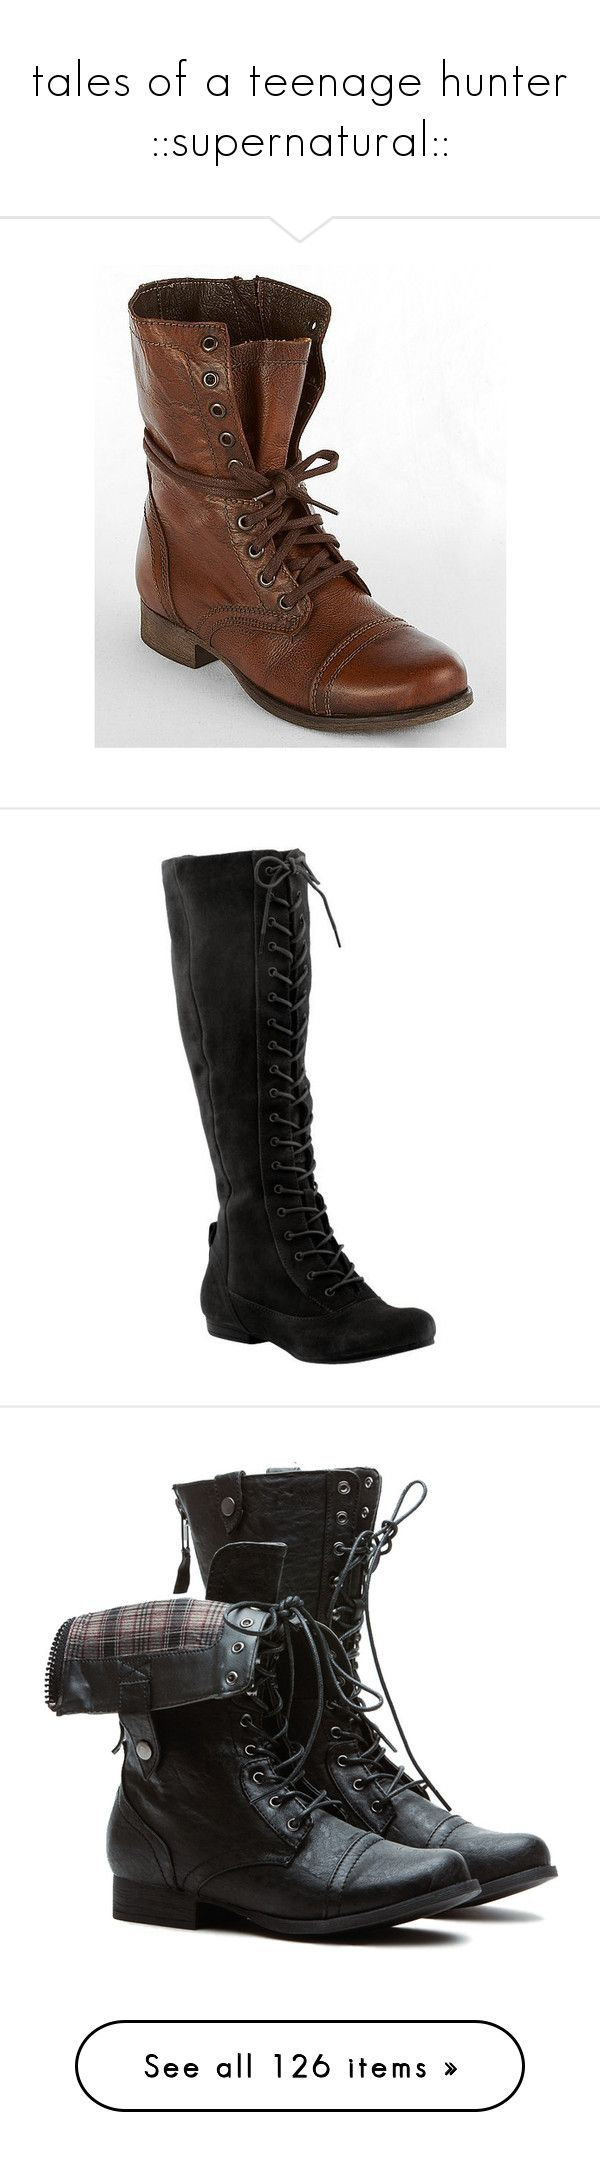 """""""tales of a teenage hunter ::supernatural::"""" by demiwitch-of-mischief ❤ liked on Polyvore featuring shoes, boots, botas, combat boots, brown, brown combat boots, leather lace up boots, brown mid calf boots, lace up combat boots and steve madden boots"""